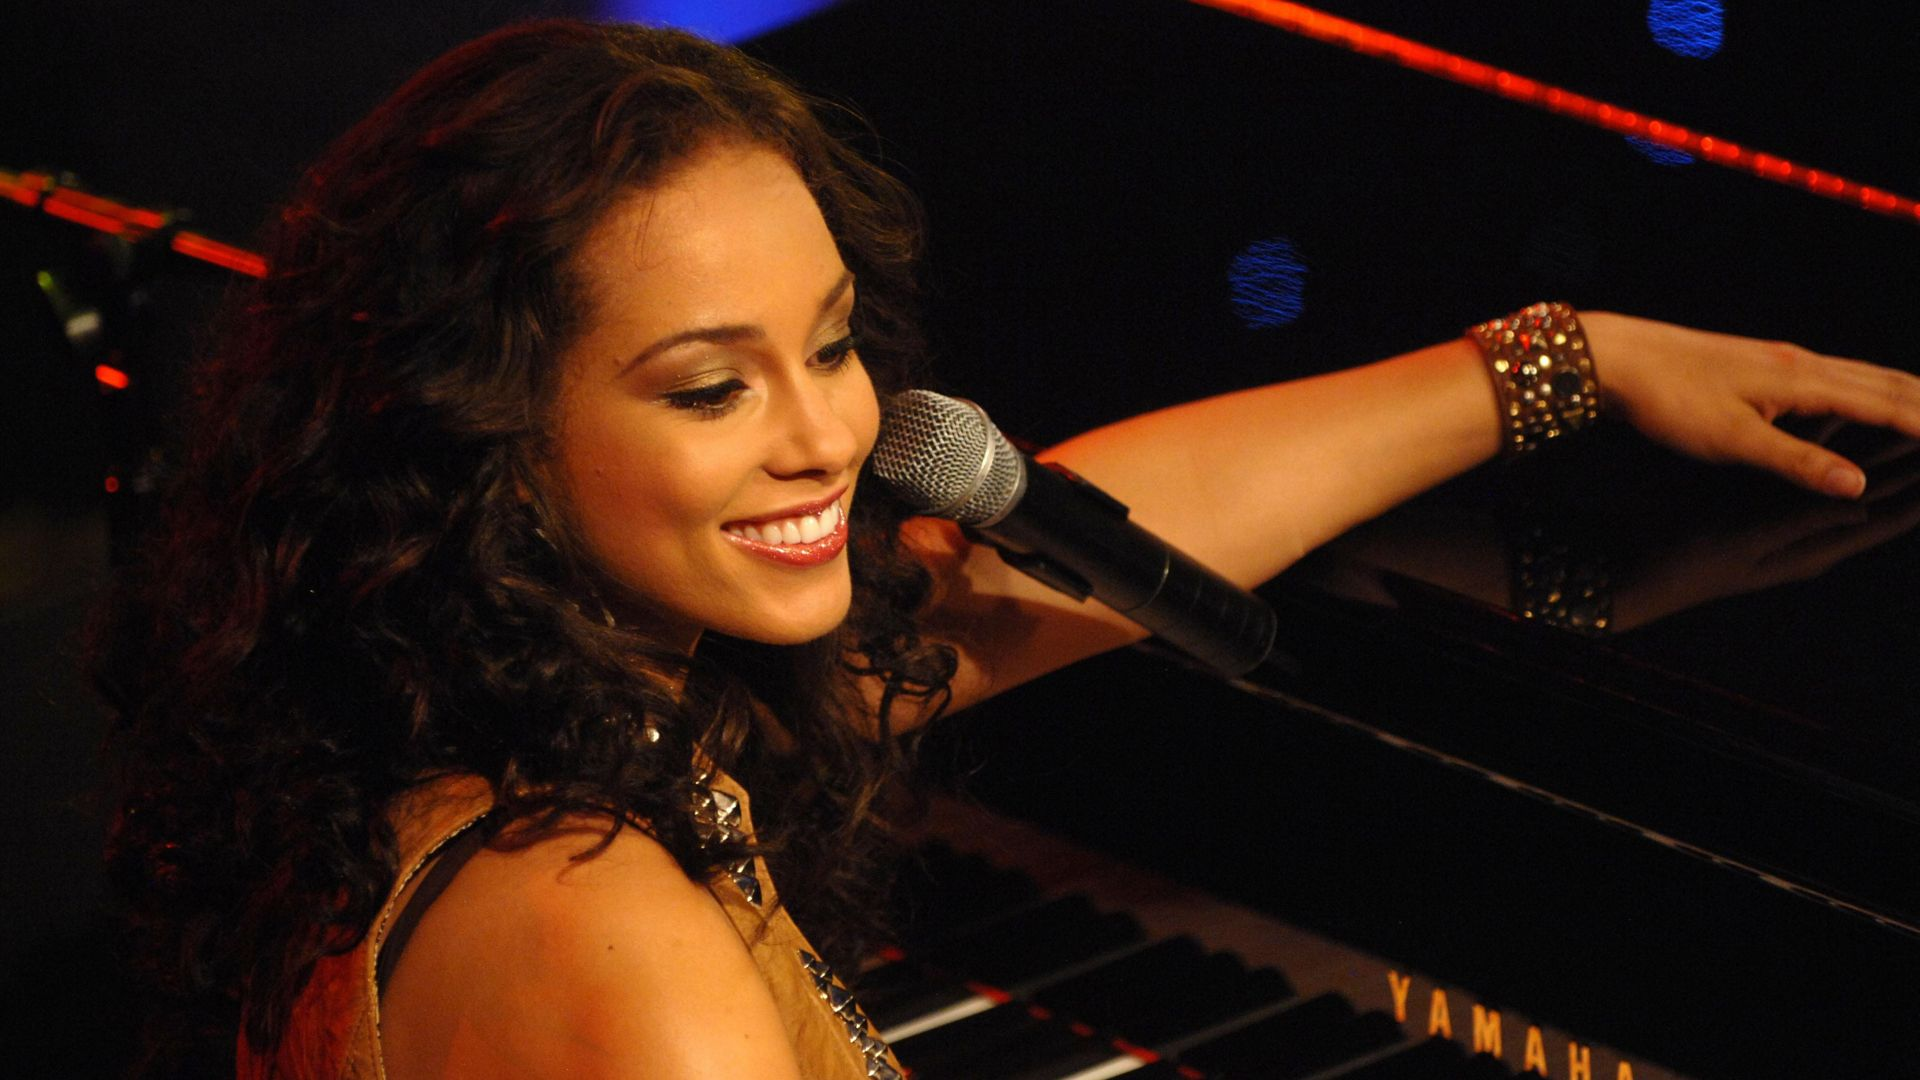 Alicia Keys Wallpapers High Quality | Download Free